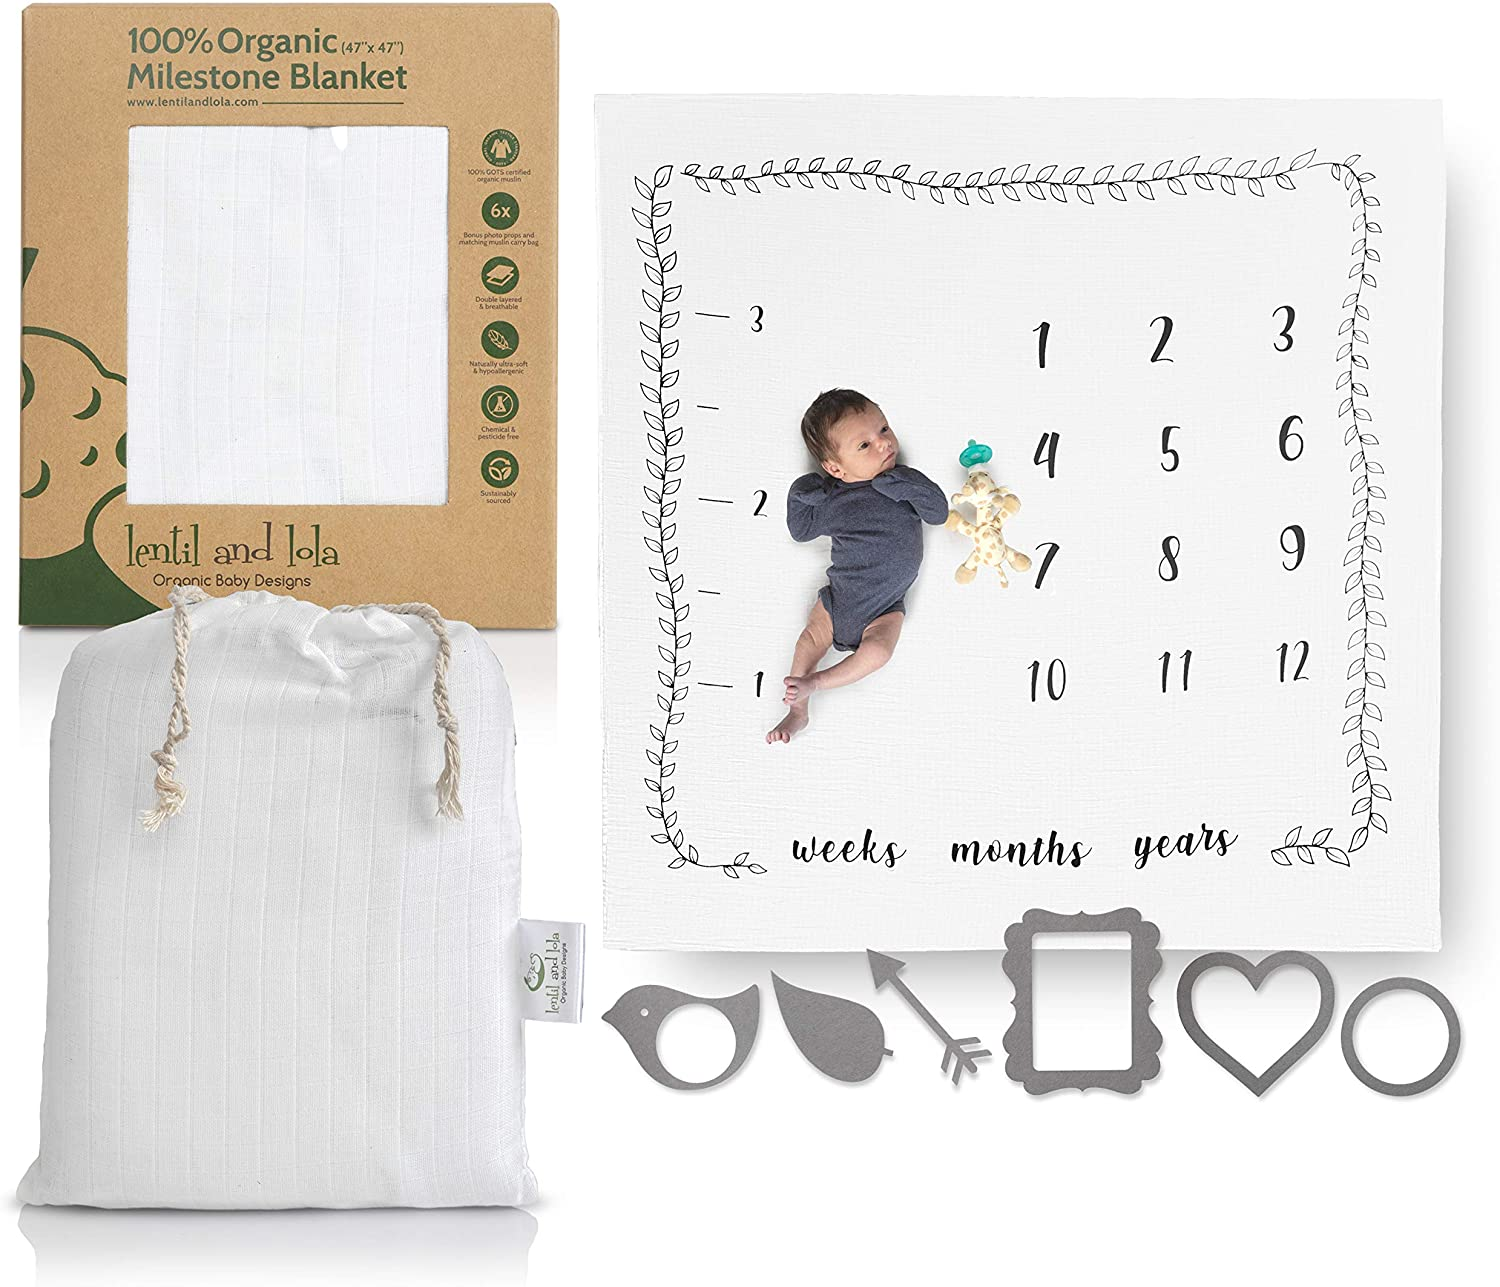 Lentil and Lola Monthly Milestone Blanket |100% Organic Muslin | 6 Photo Props + Carry Bag | Monthly Blanket for Baby Pictures | Milestone Blanket for Infants